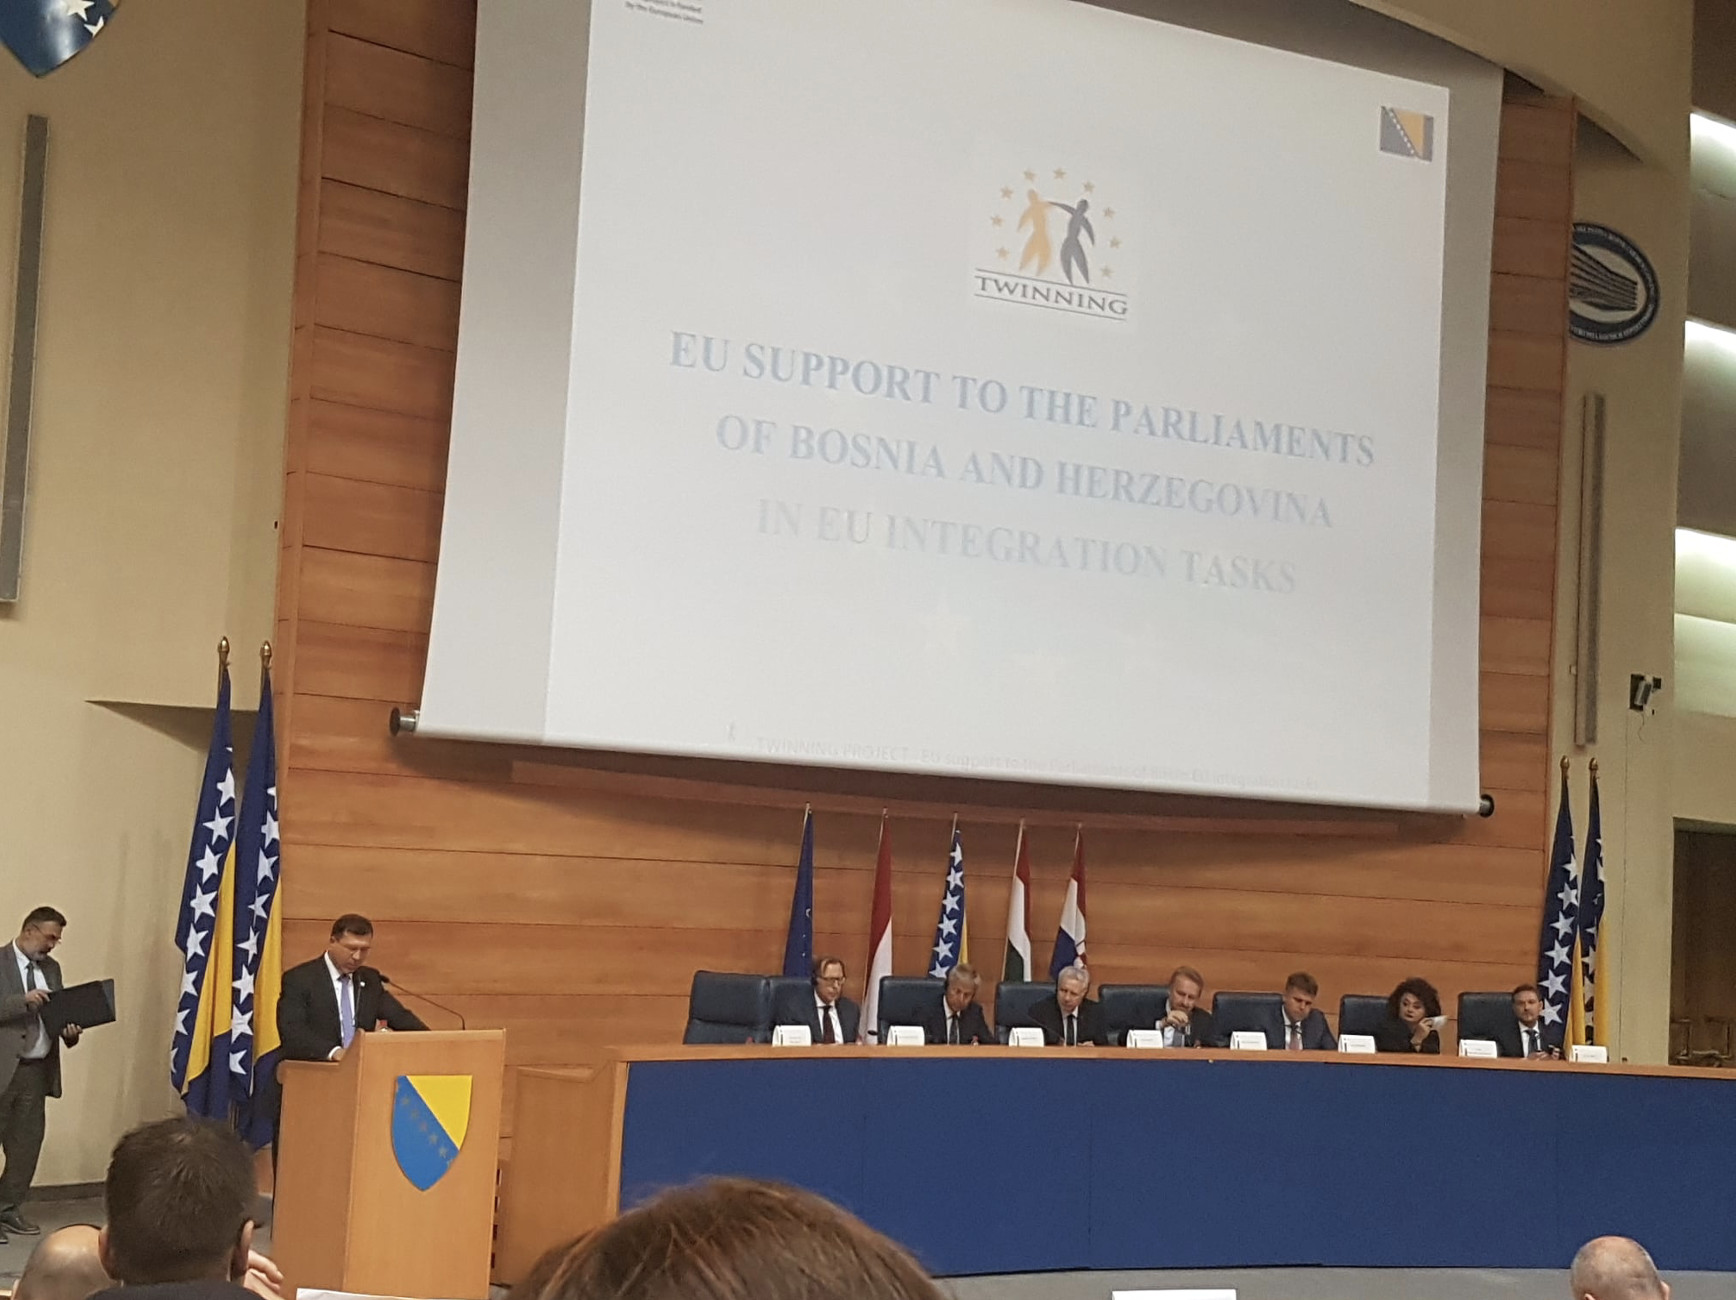 Opening of the Twinning Project - EU support to the Parliaments of Bosnia and Herzegovina in EU integration tasks